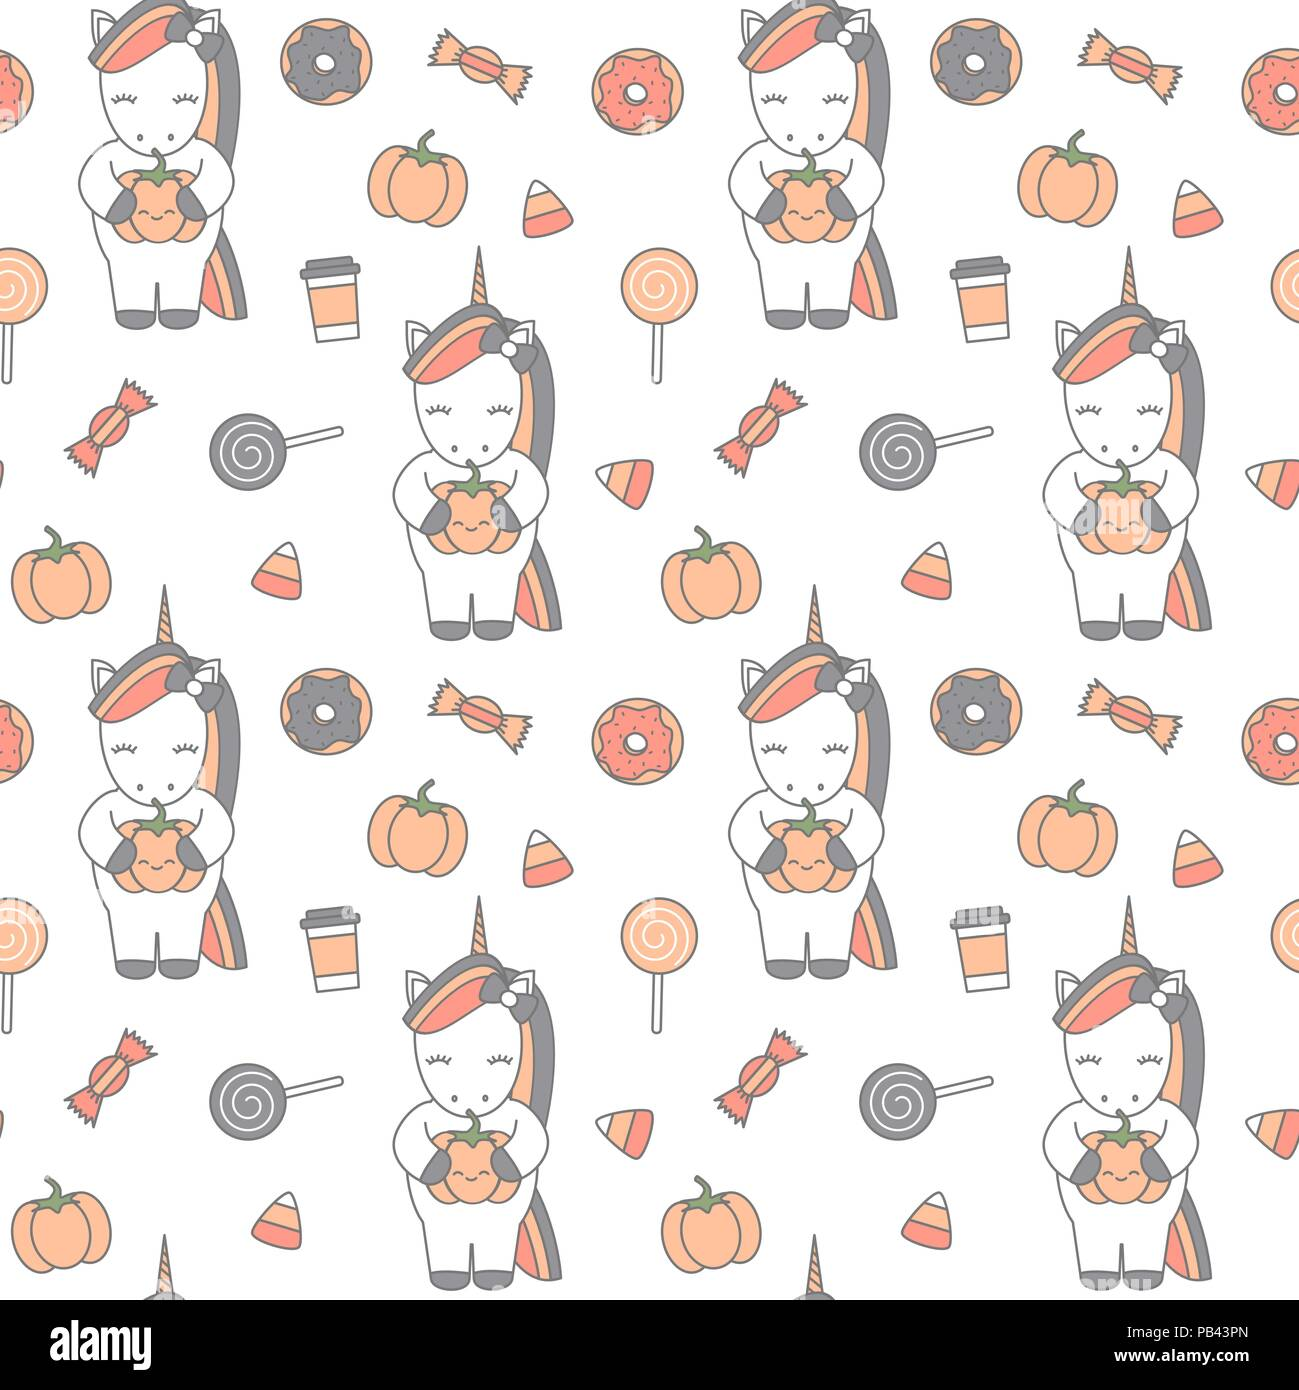 Cute Cartoon Halloween Background Illustration Modèle